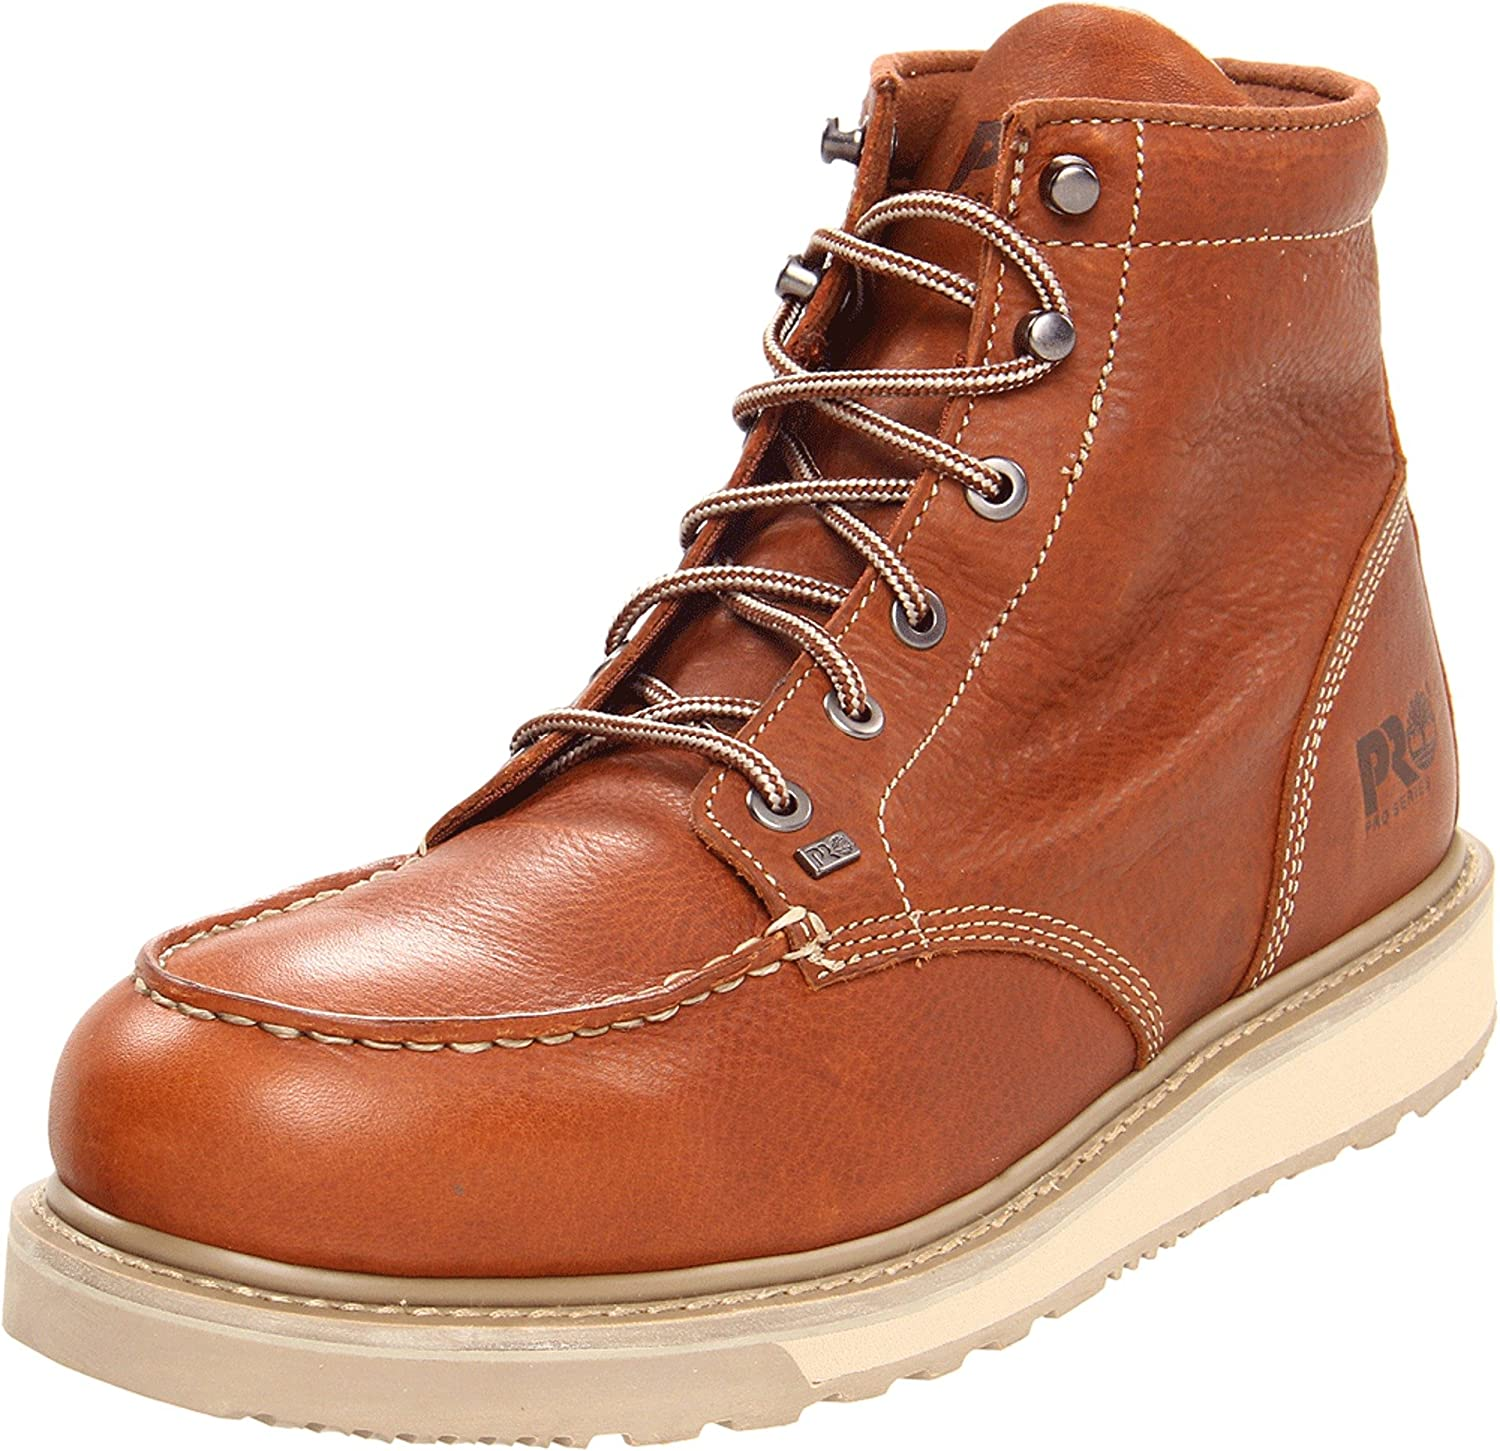 Barstow Wedge Work Boot Boot